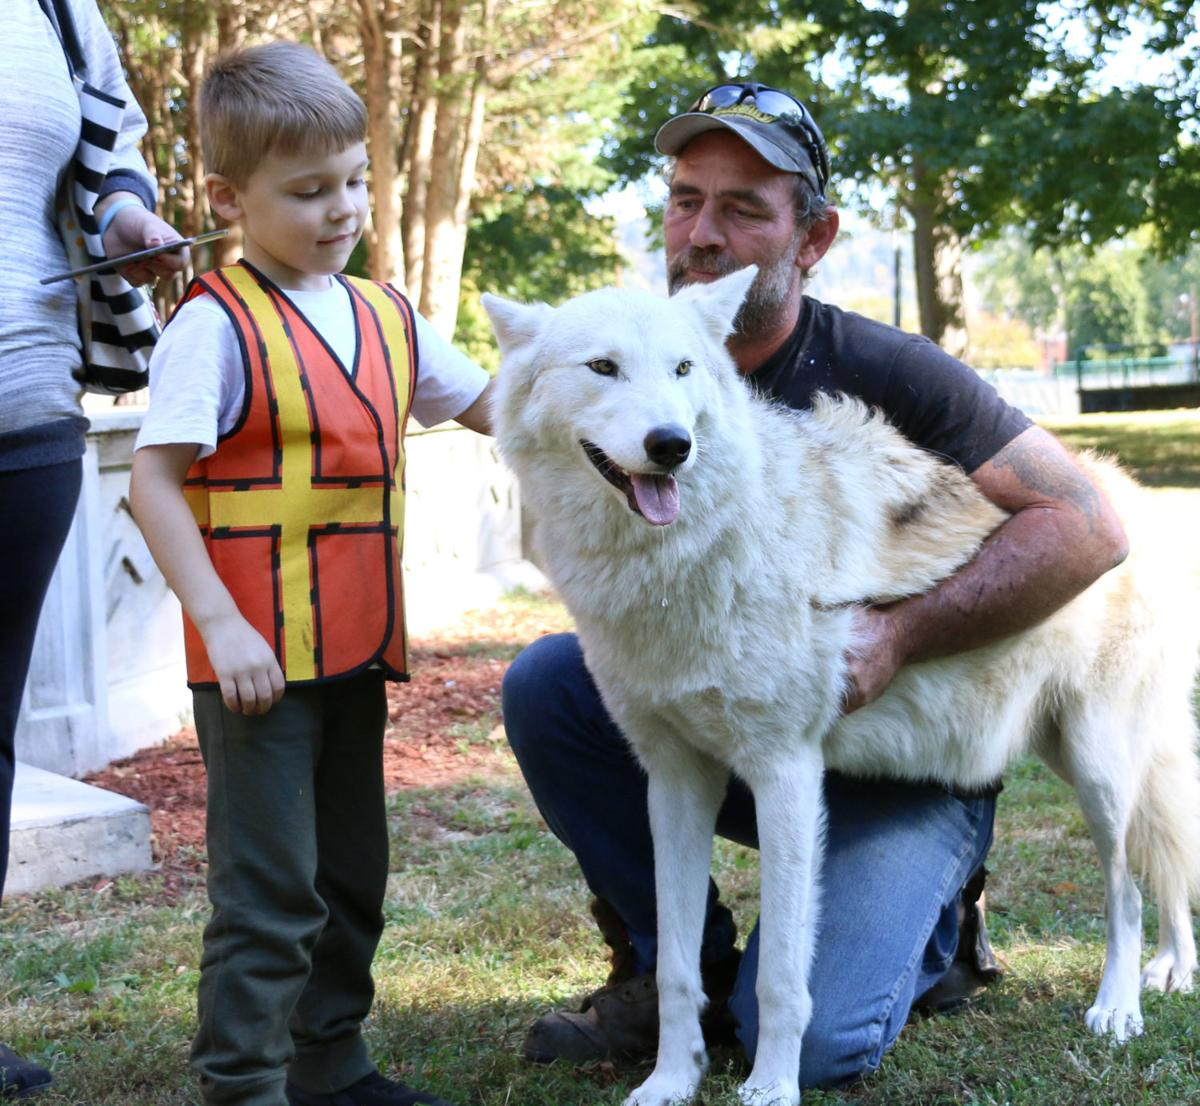 Wolf hybrid puppies for sale in ohio - A Pre School Student Pets Cheyenne The Wolf Dog That John Deboard Brought With Him Rachel Adkins The Daily Independent